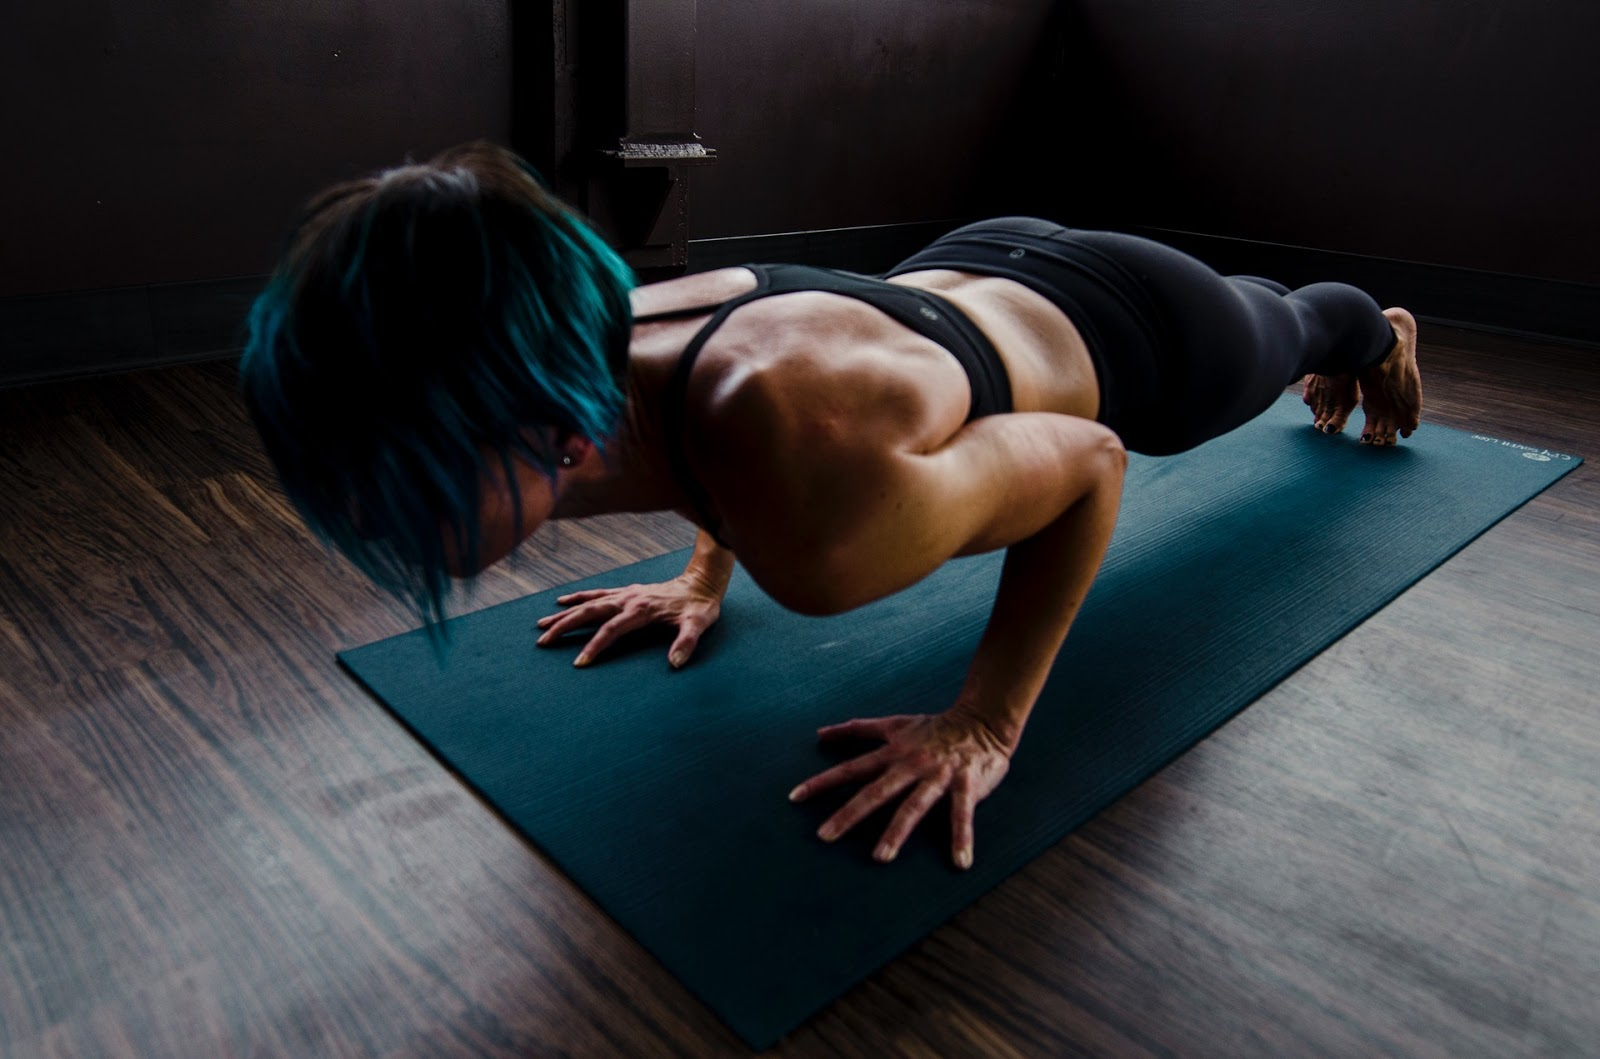 Home Workout Captions For Instagram